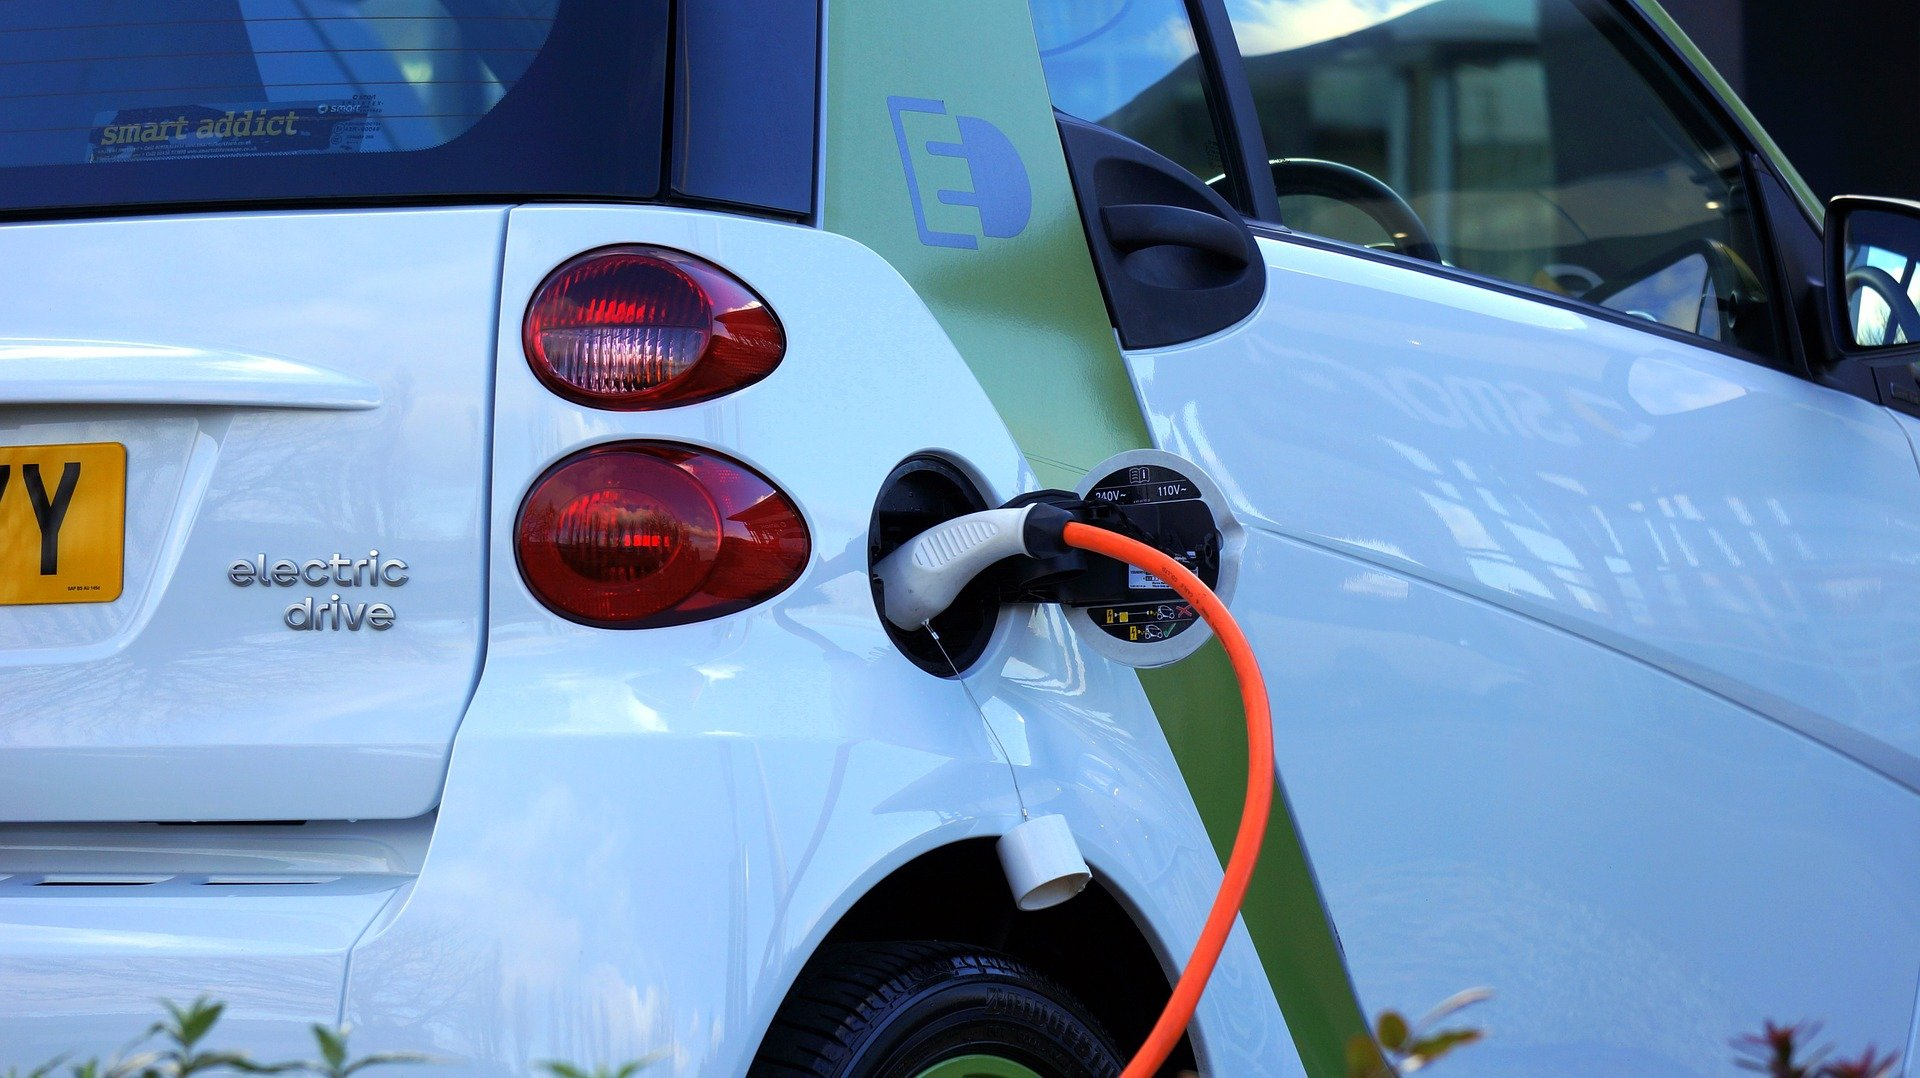 Electric Smart Car on Charge